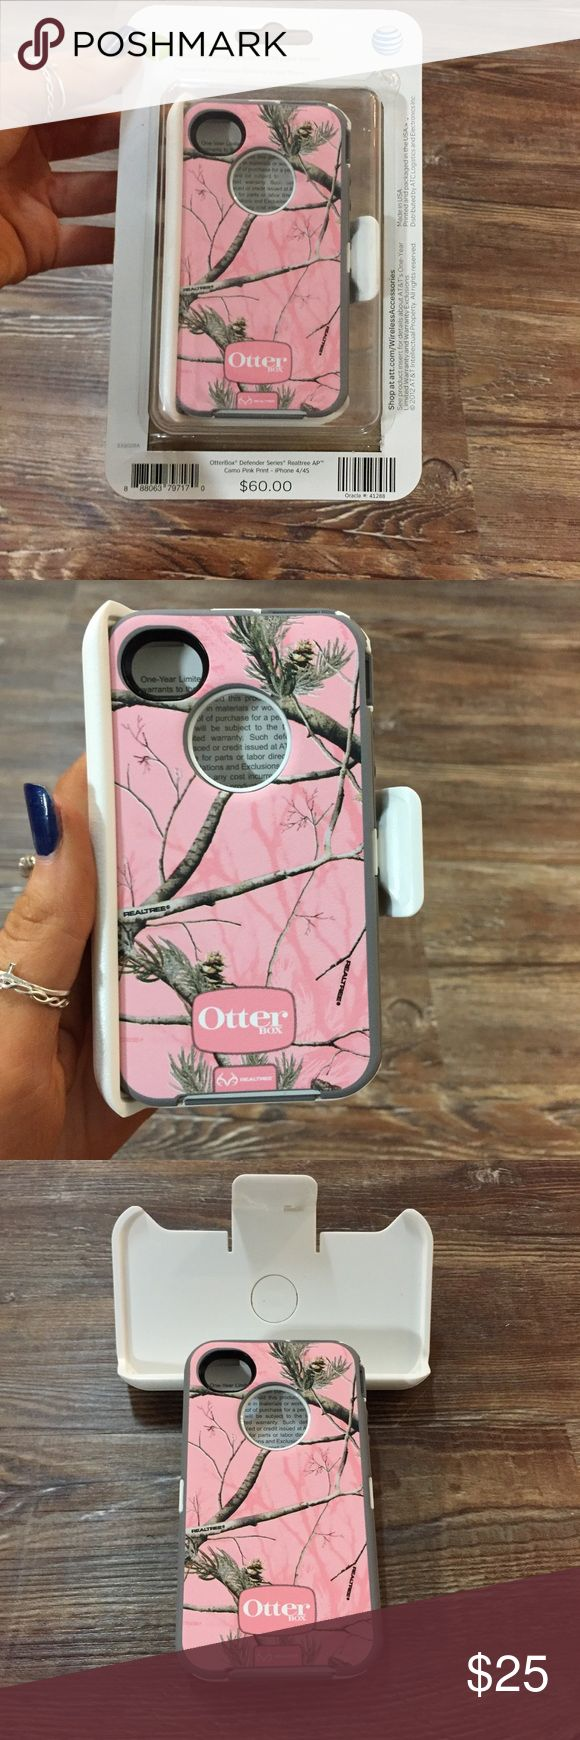 Brand New OttorBox Defender Series- IPhone 4/4S Pink Camo! Brand new with original box. Also comes with the phone clip to attach to your hip. BRAND NEW. OtterBox Accessories Phone Cases